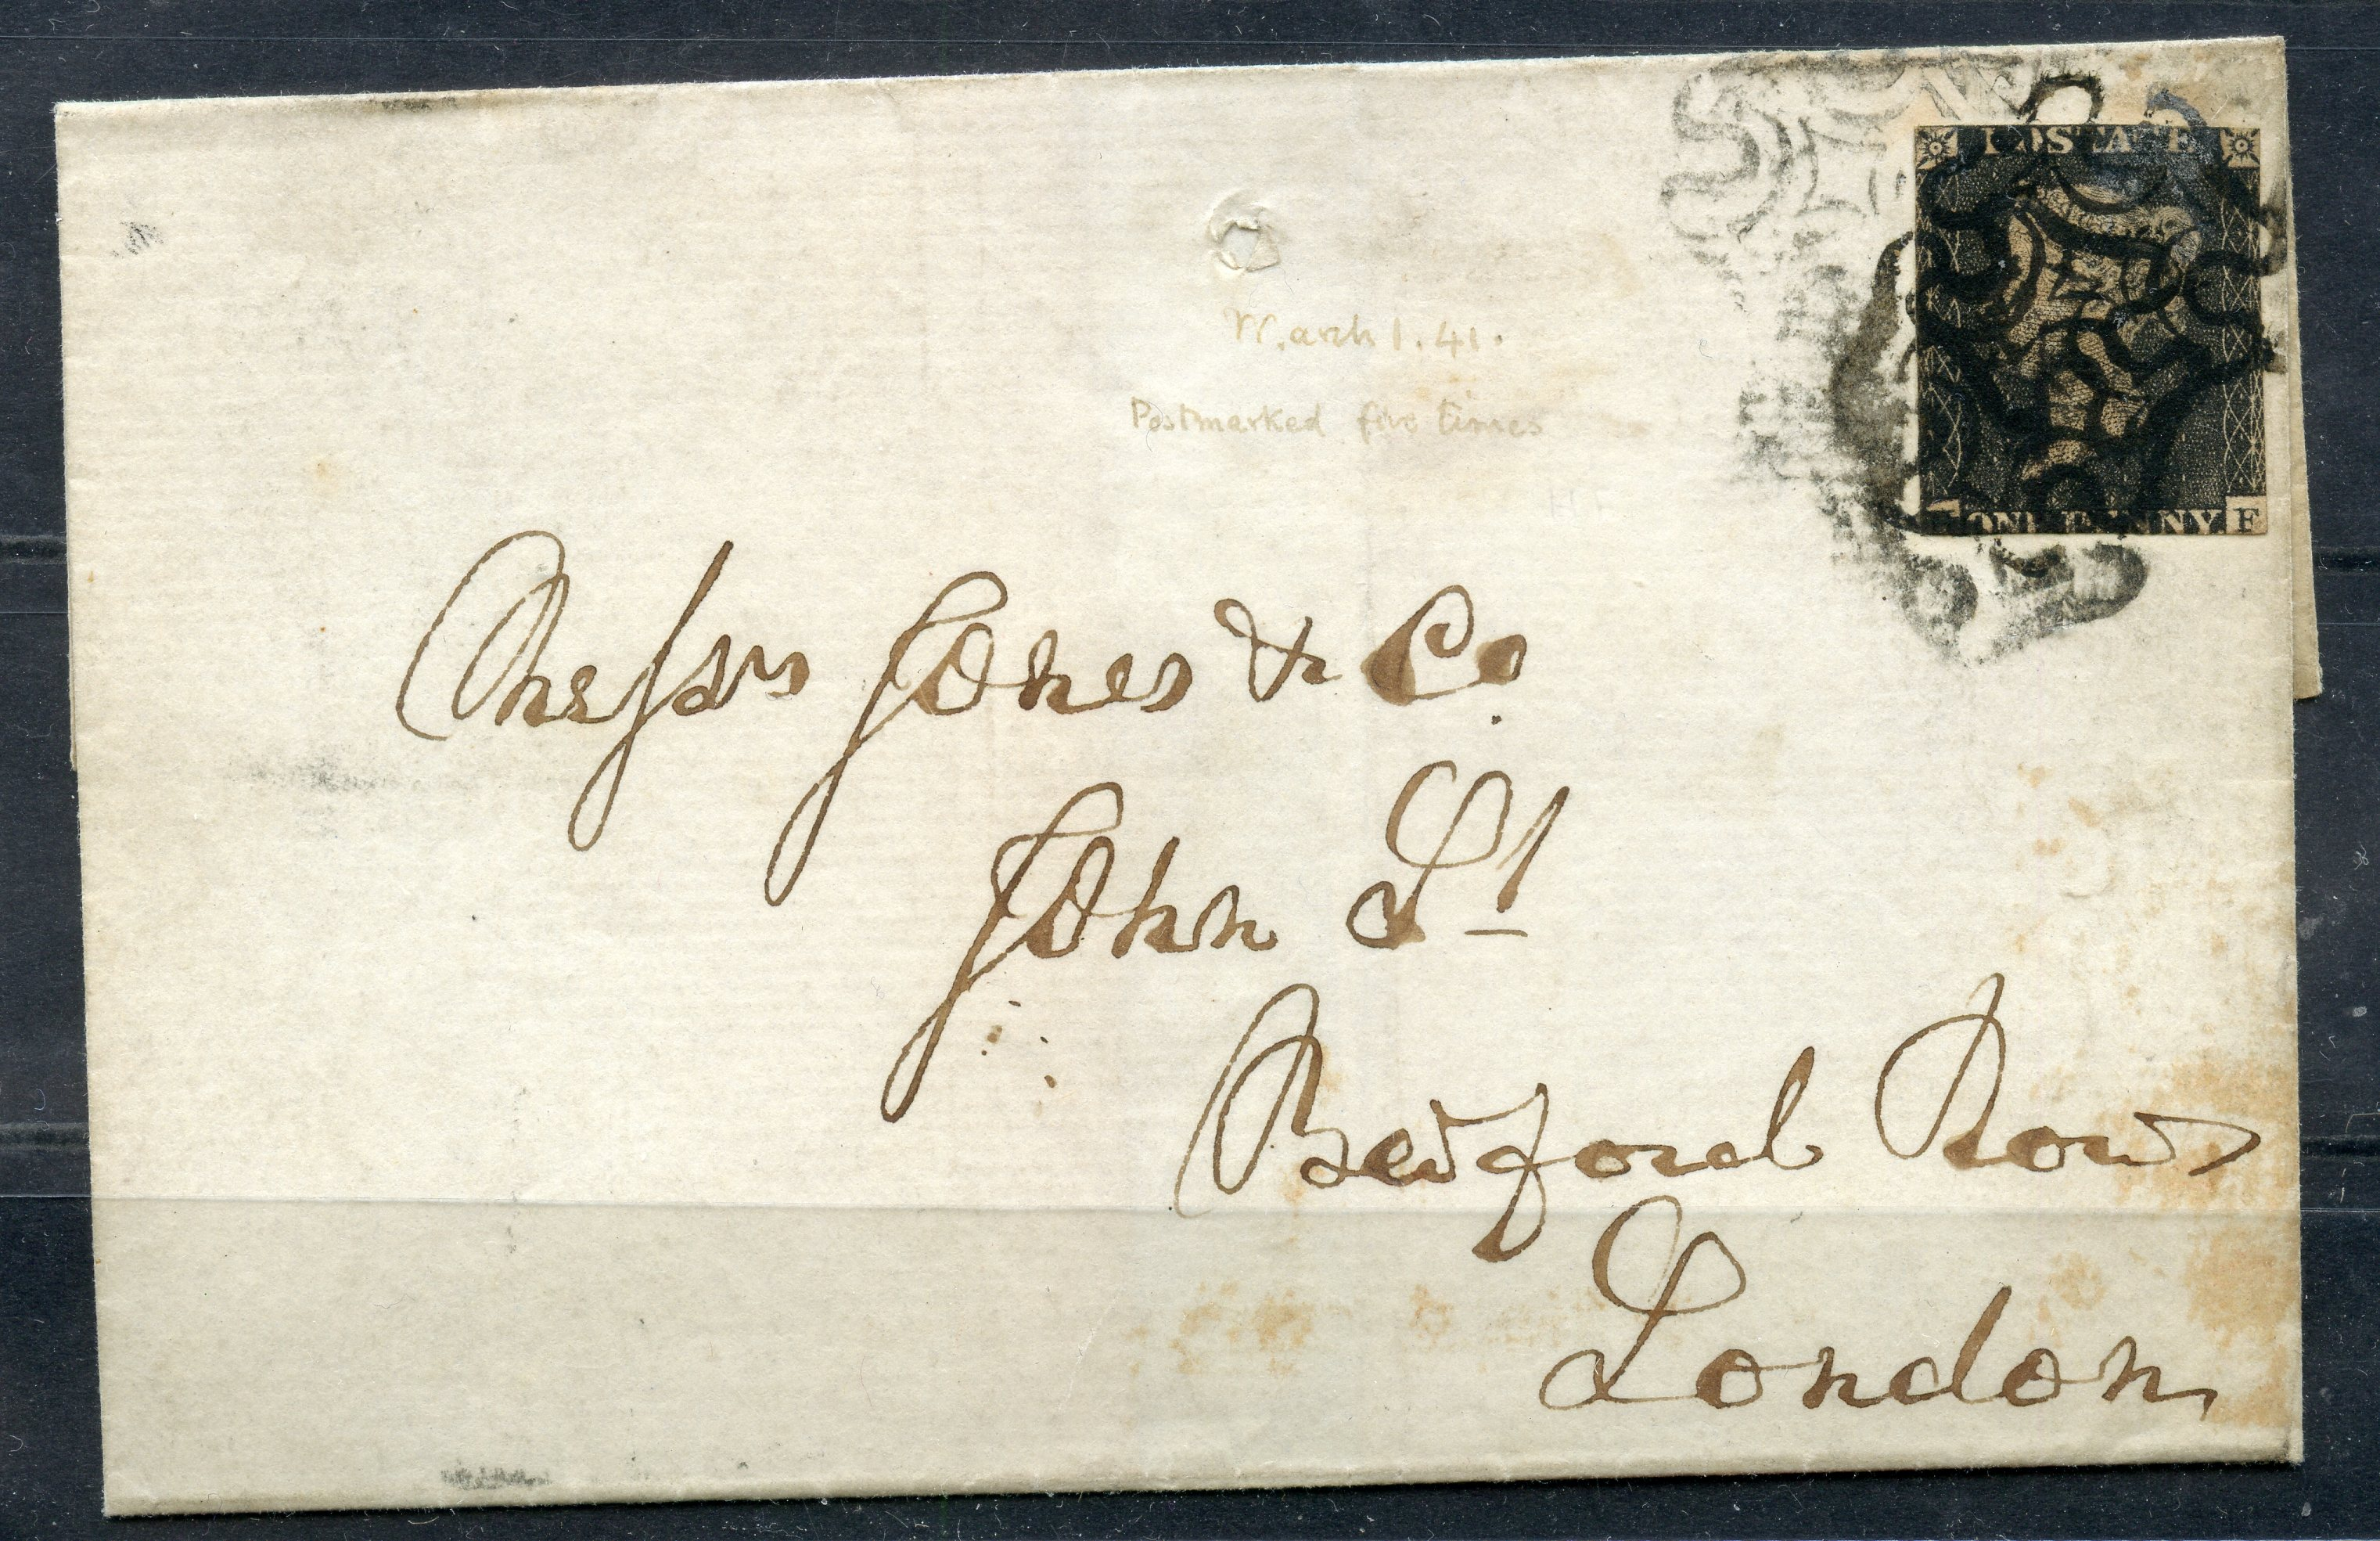 POSTAL HISTORY 1841 1d black with tight/into margins all round on wrapper from Newcastle-under-